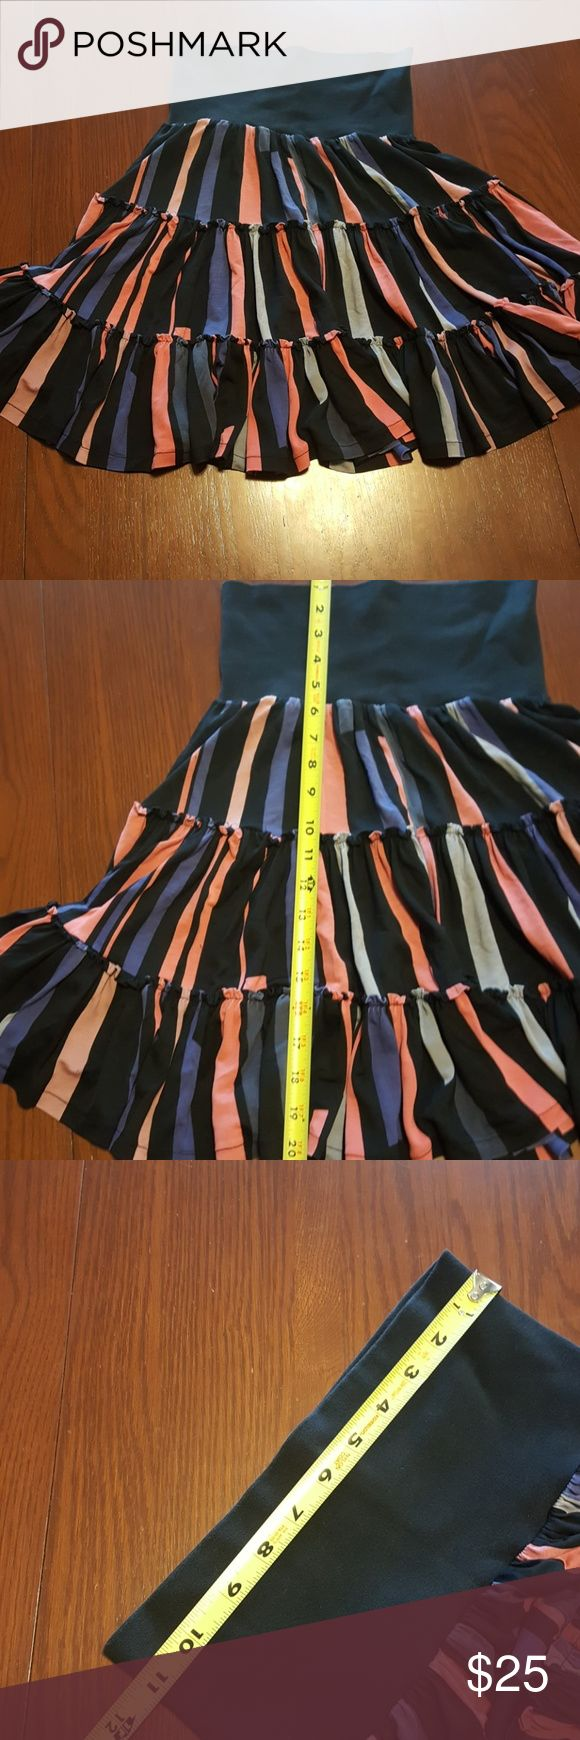 French Connection awesome stripe full skirt NWOT funky fun skirt French Connection Skirts Midi